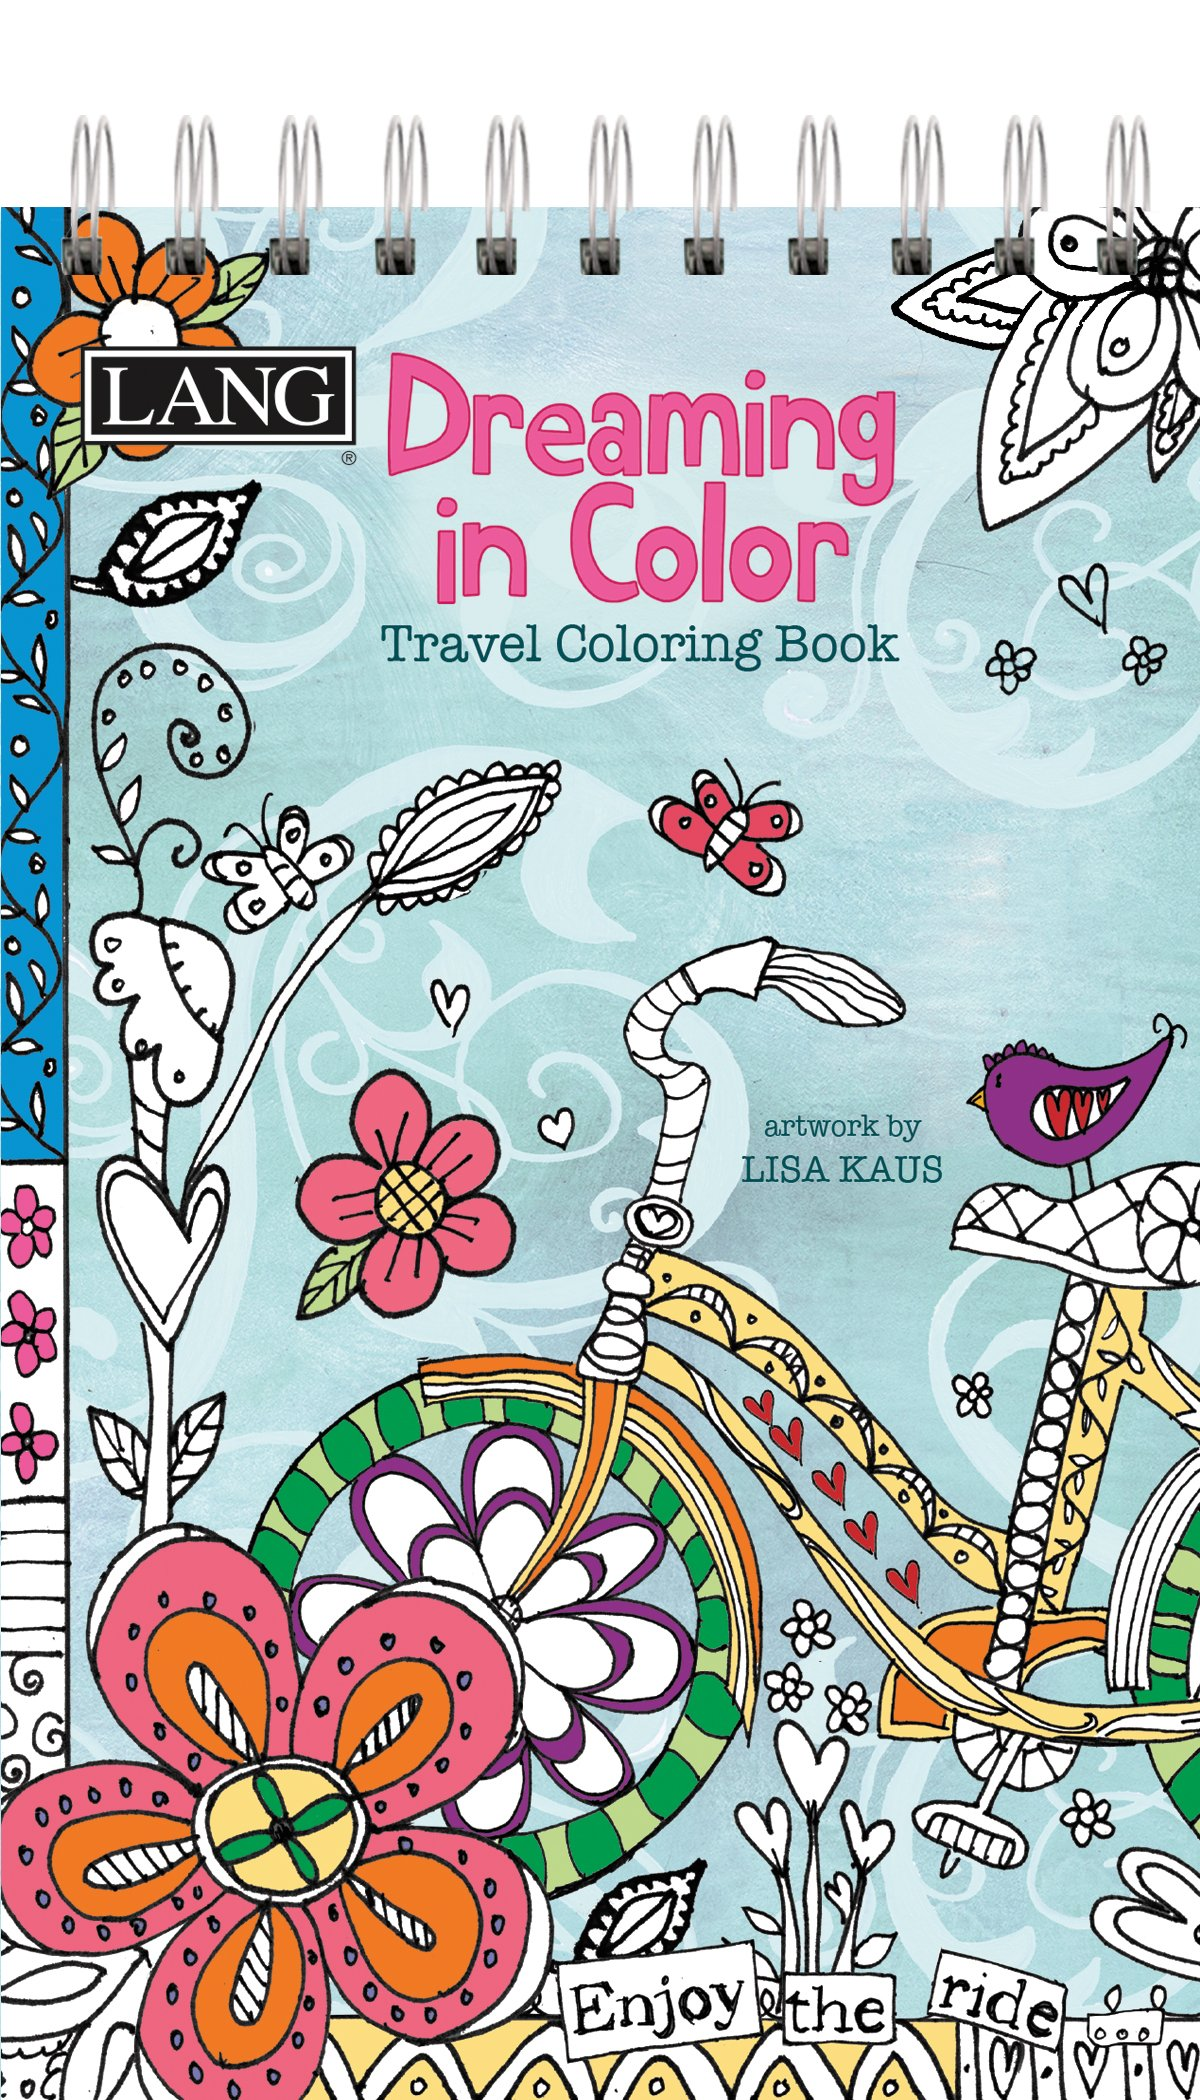 LANG Dreaming In Color Travel Coloring Book Spiral Bound